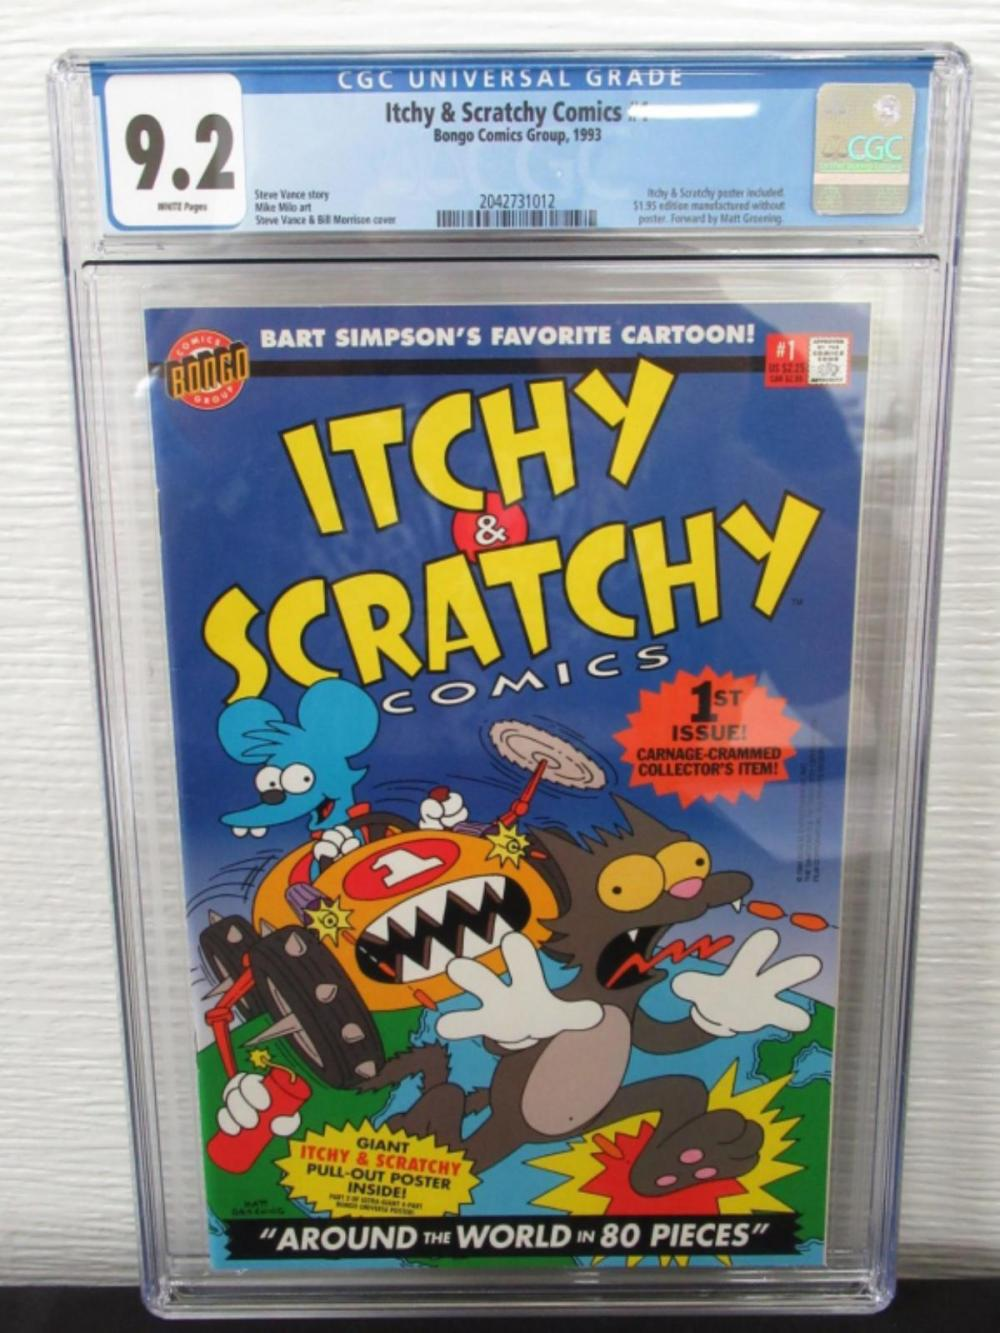 Itchy & Scratchy Comics #1 CGC 9.2 w poster